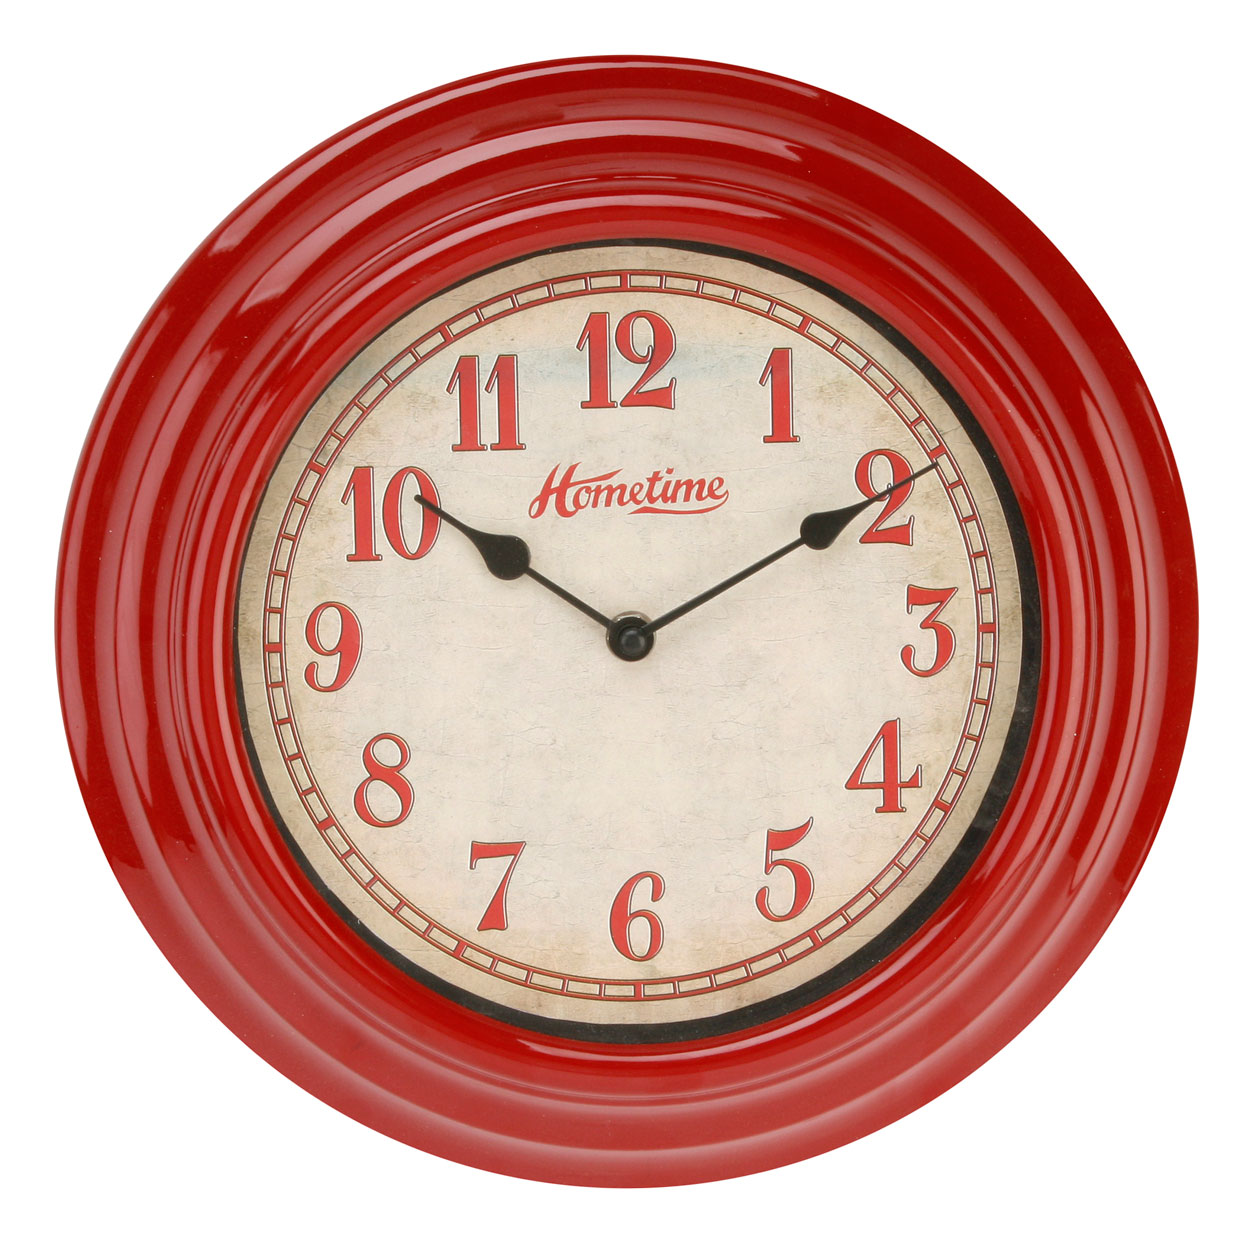 hometime cool retro design red plastic wall clock 30cm kitchen home